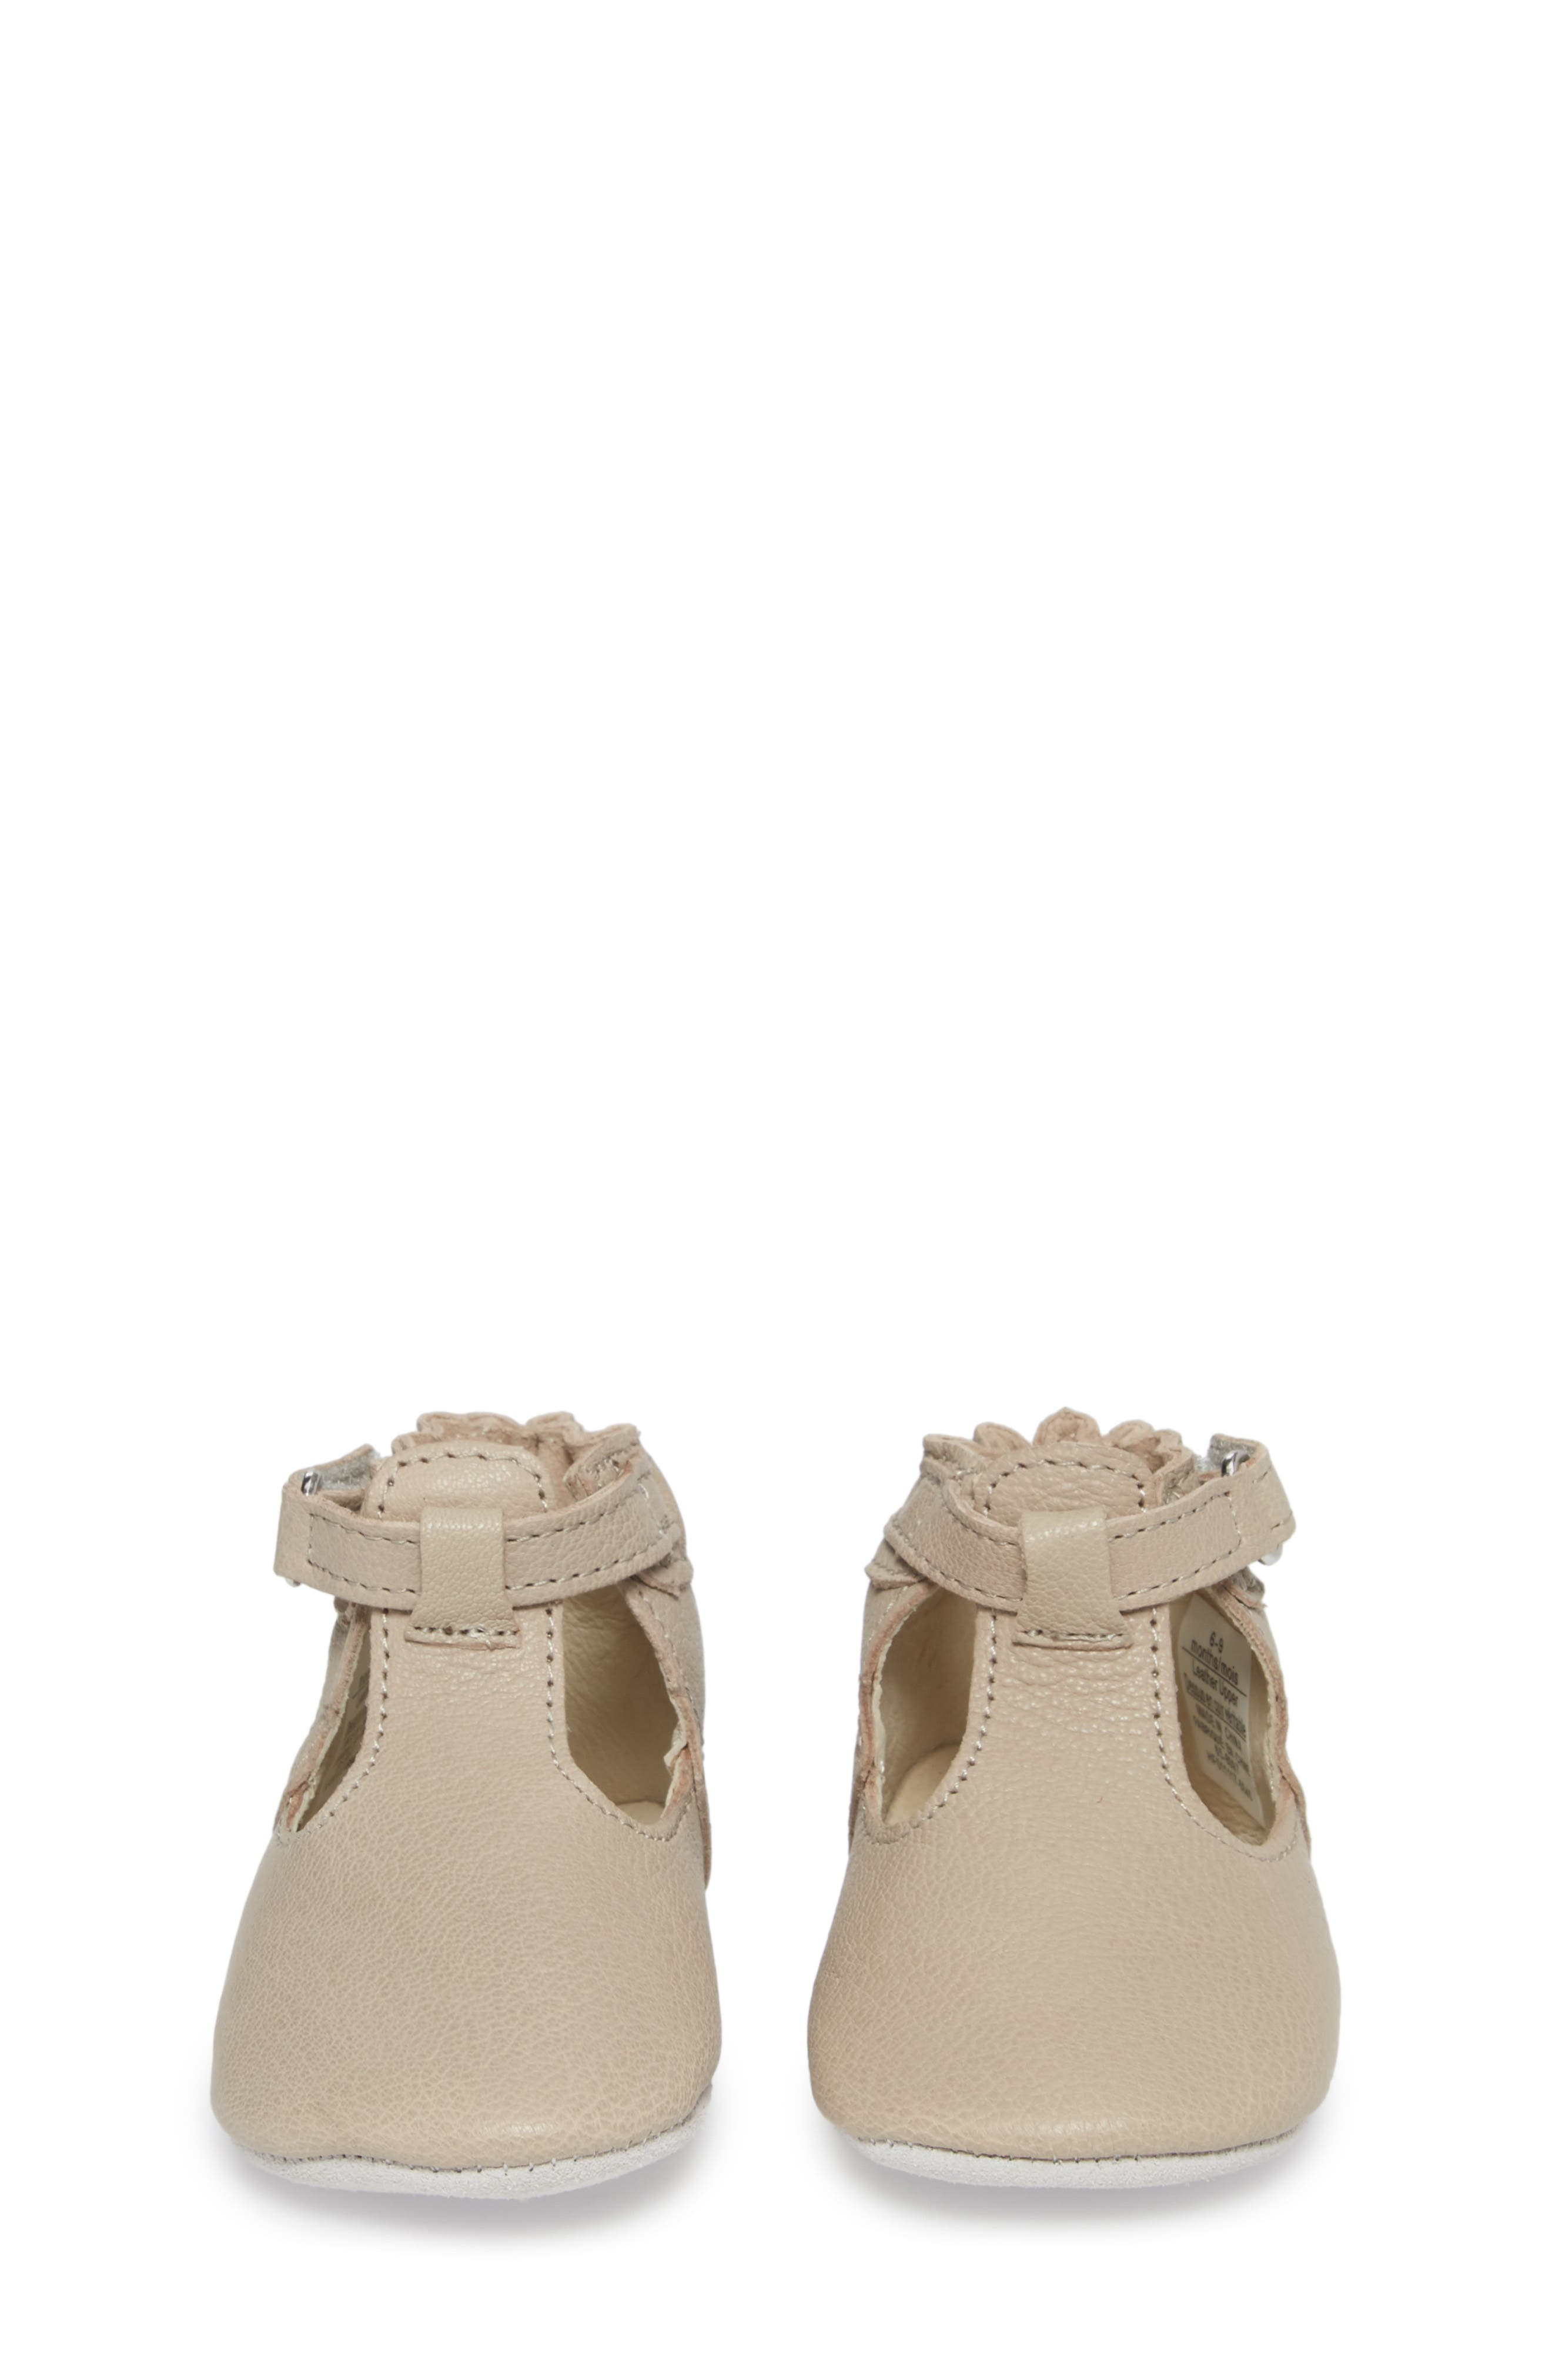 ROBEEZ<SUP>®</SUP>, Penny T-Strap Mary Jane Crib Shoe, Alternate thumbnail 4, color, TAUPE